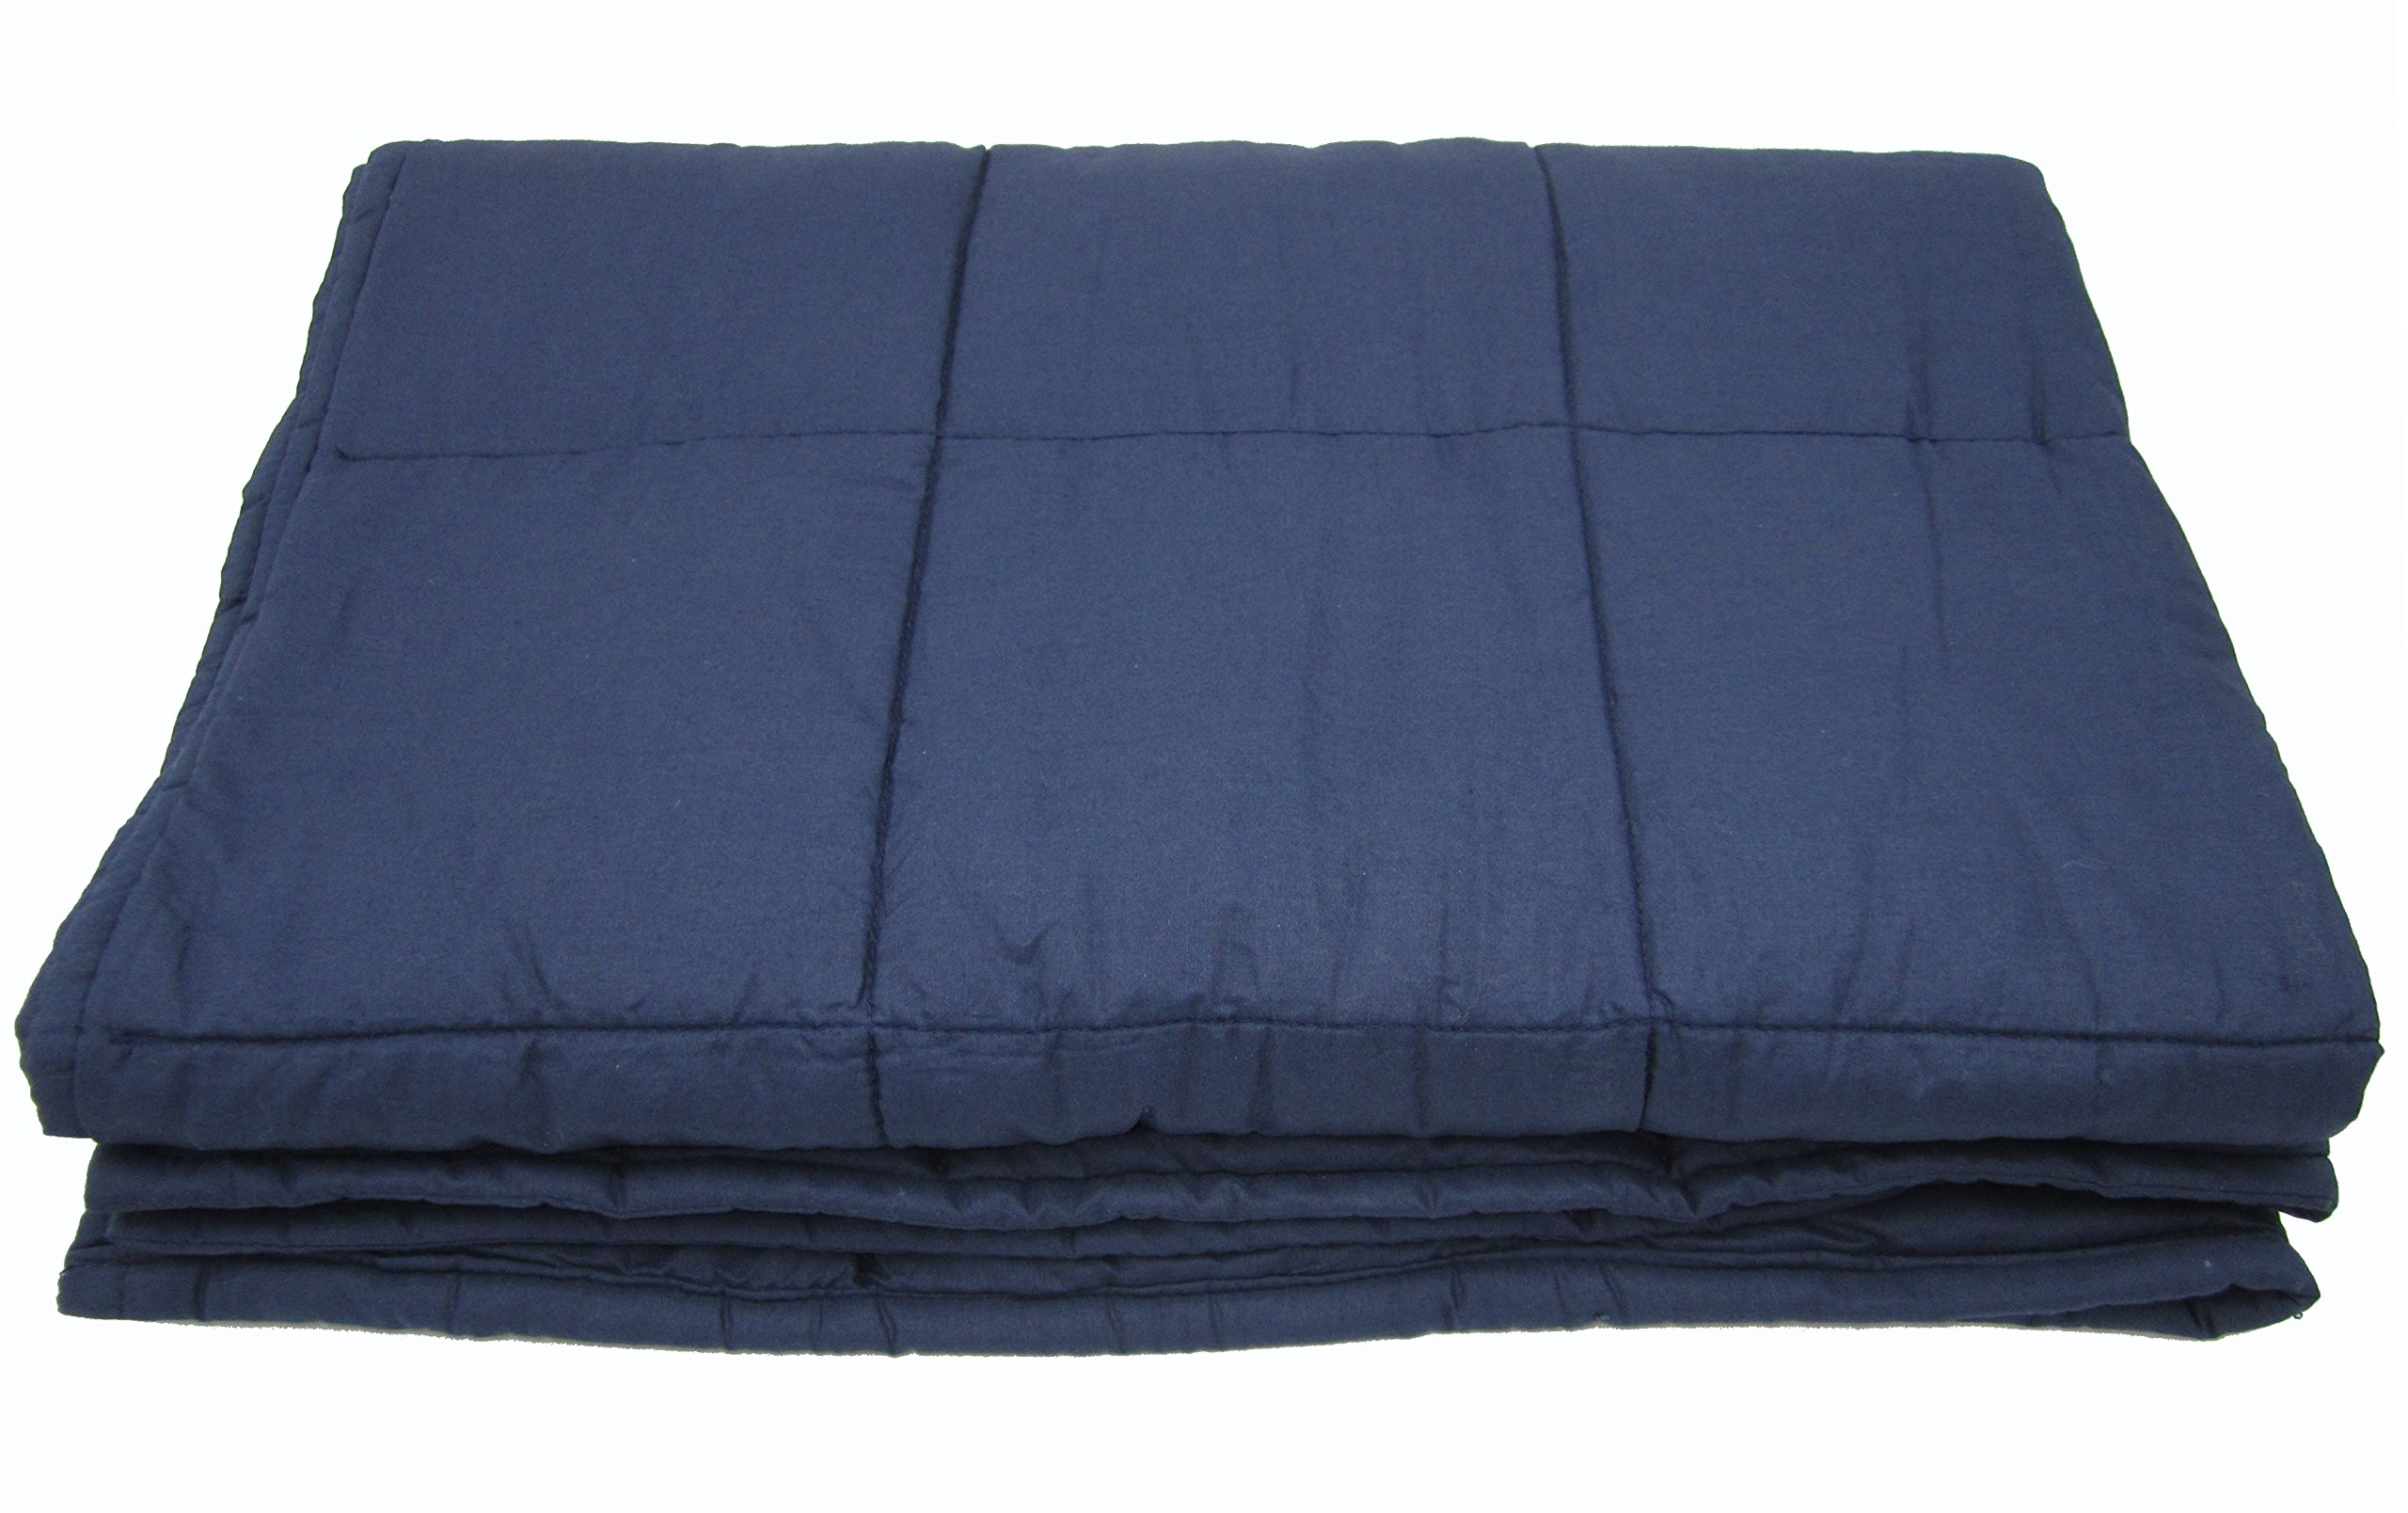 Weighted Blanket for Adults, 10lb, Cotton, Stress and Anxiety Relief, Helps Calm AAD, ADHD, Autism By Jade Silk by Jade Silk (Image #1)